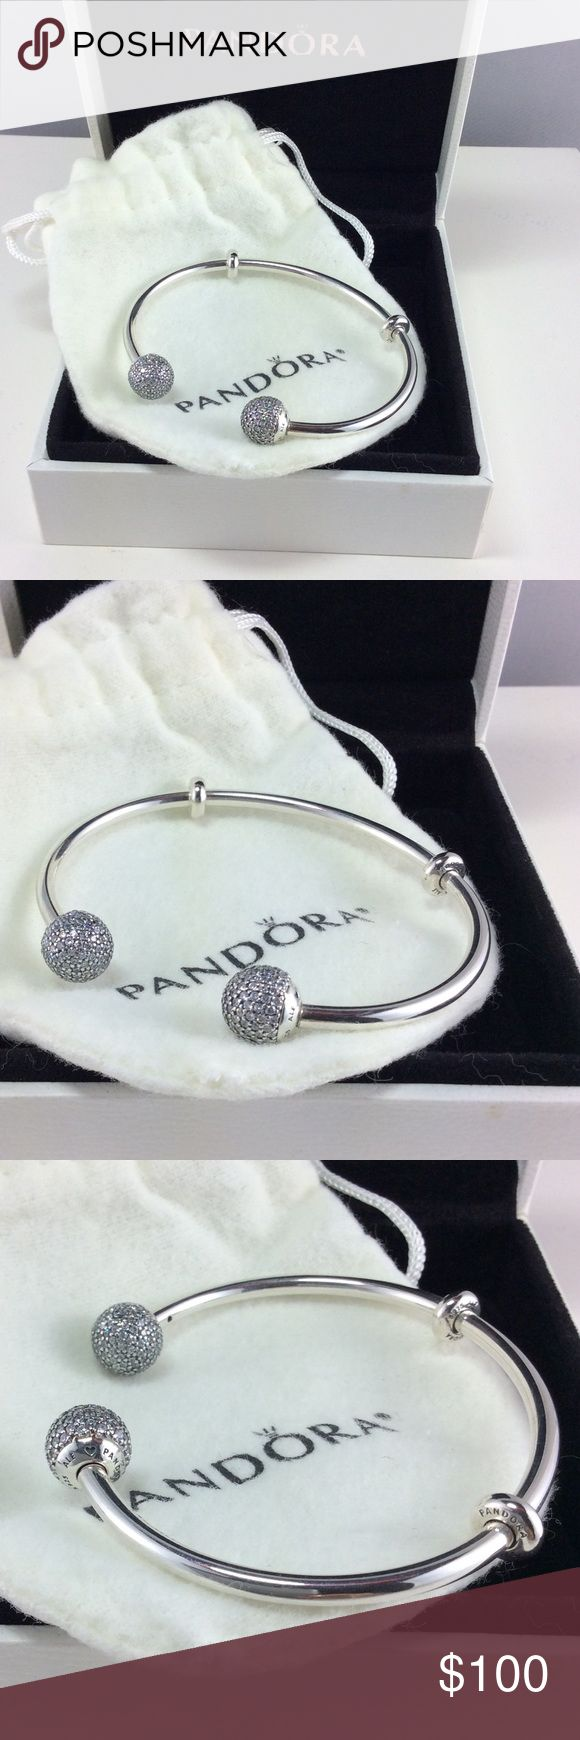 New Pandora Open Sparkling Bangle Size 3 This sparkling open bangle in sterling silver comes with two stoppers with silicone grips and end caps embellished with pave-set cubic zirconia stones. Add your favorite charms for a unique look and it's the perfect bracelet for glamorous and playful stylings.  100% Authentic Pandora Sparkling Open Bangle   Condition: New  Signature Markings ALE S925  PRICE IS FIRM UNLESS BUNDLED  ⚫️NOT ACCEPTING LOWBALL OFFERS!!! NO TRADES‼️‼️‼️  Add charm box to any…